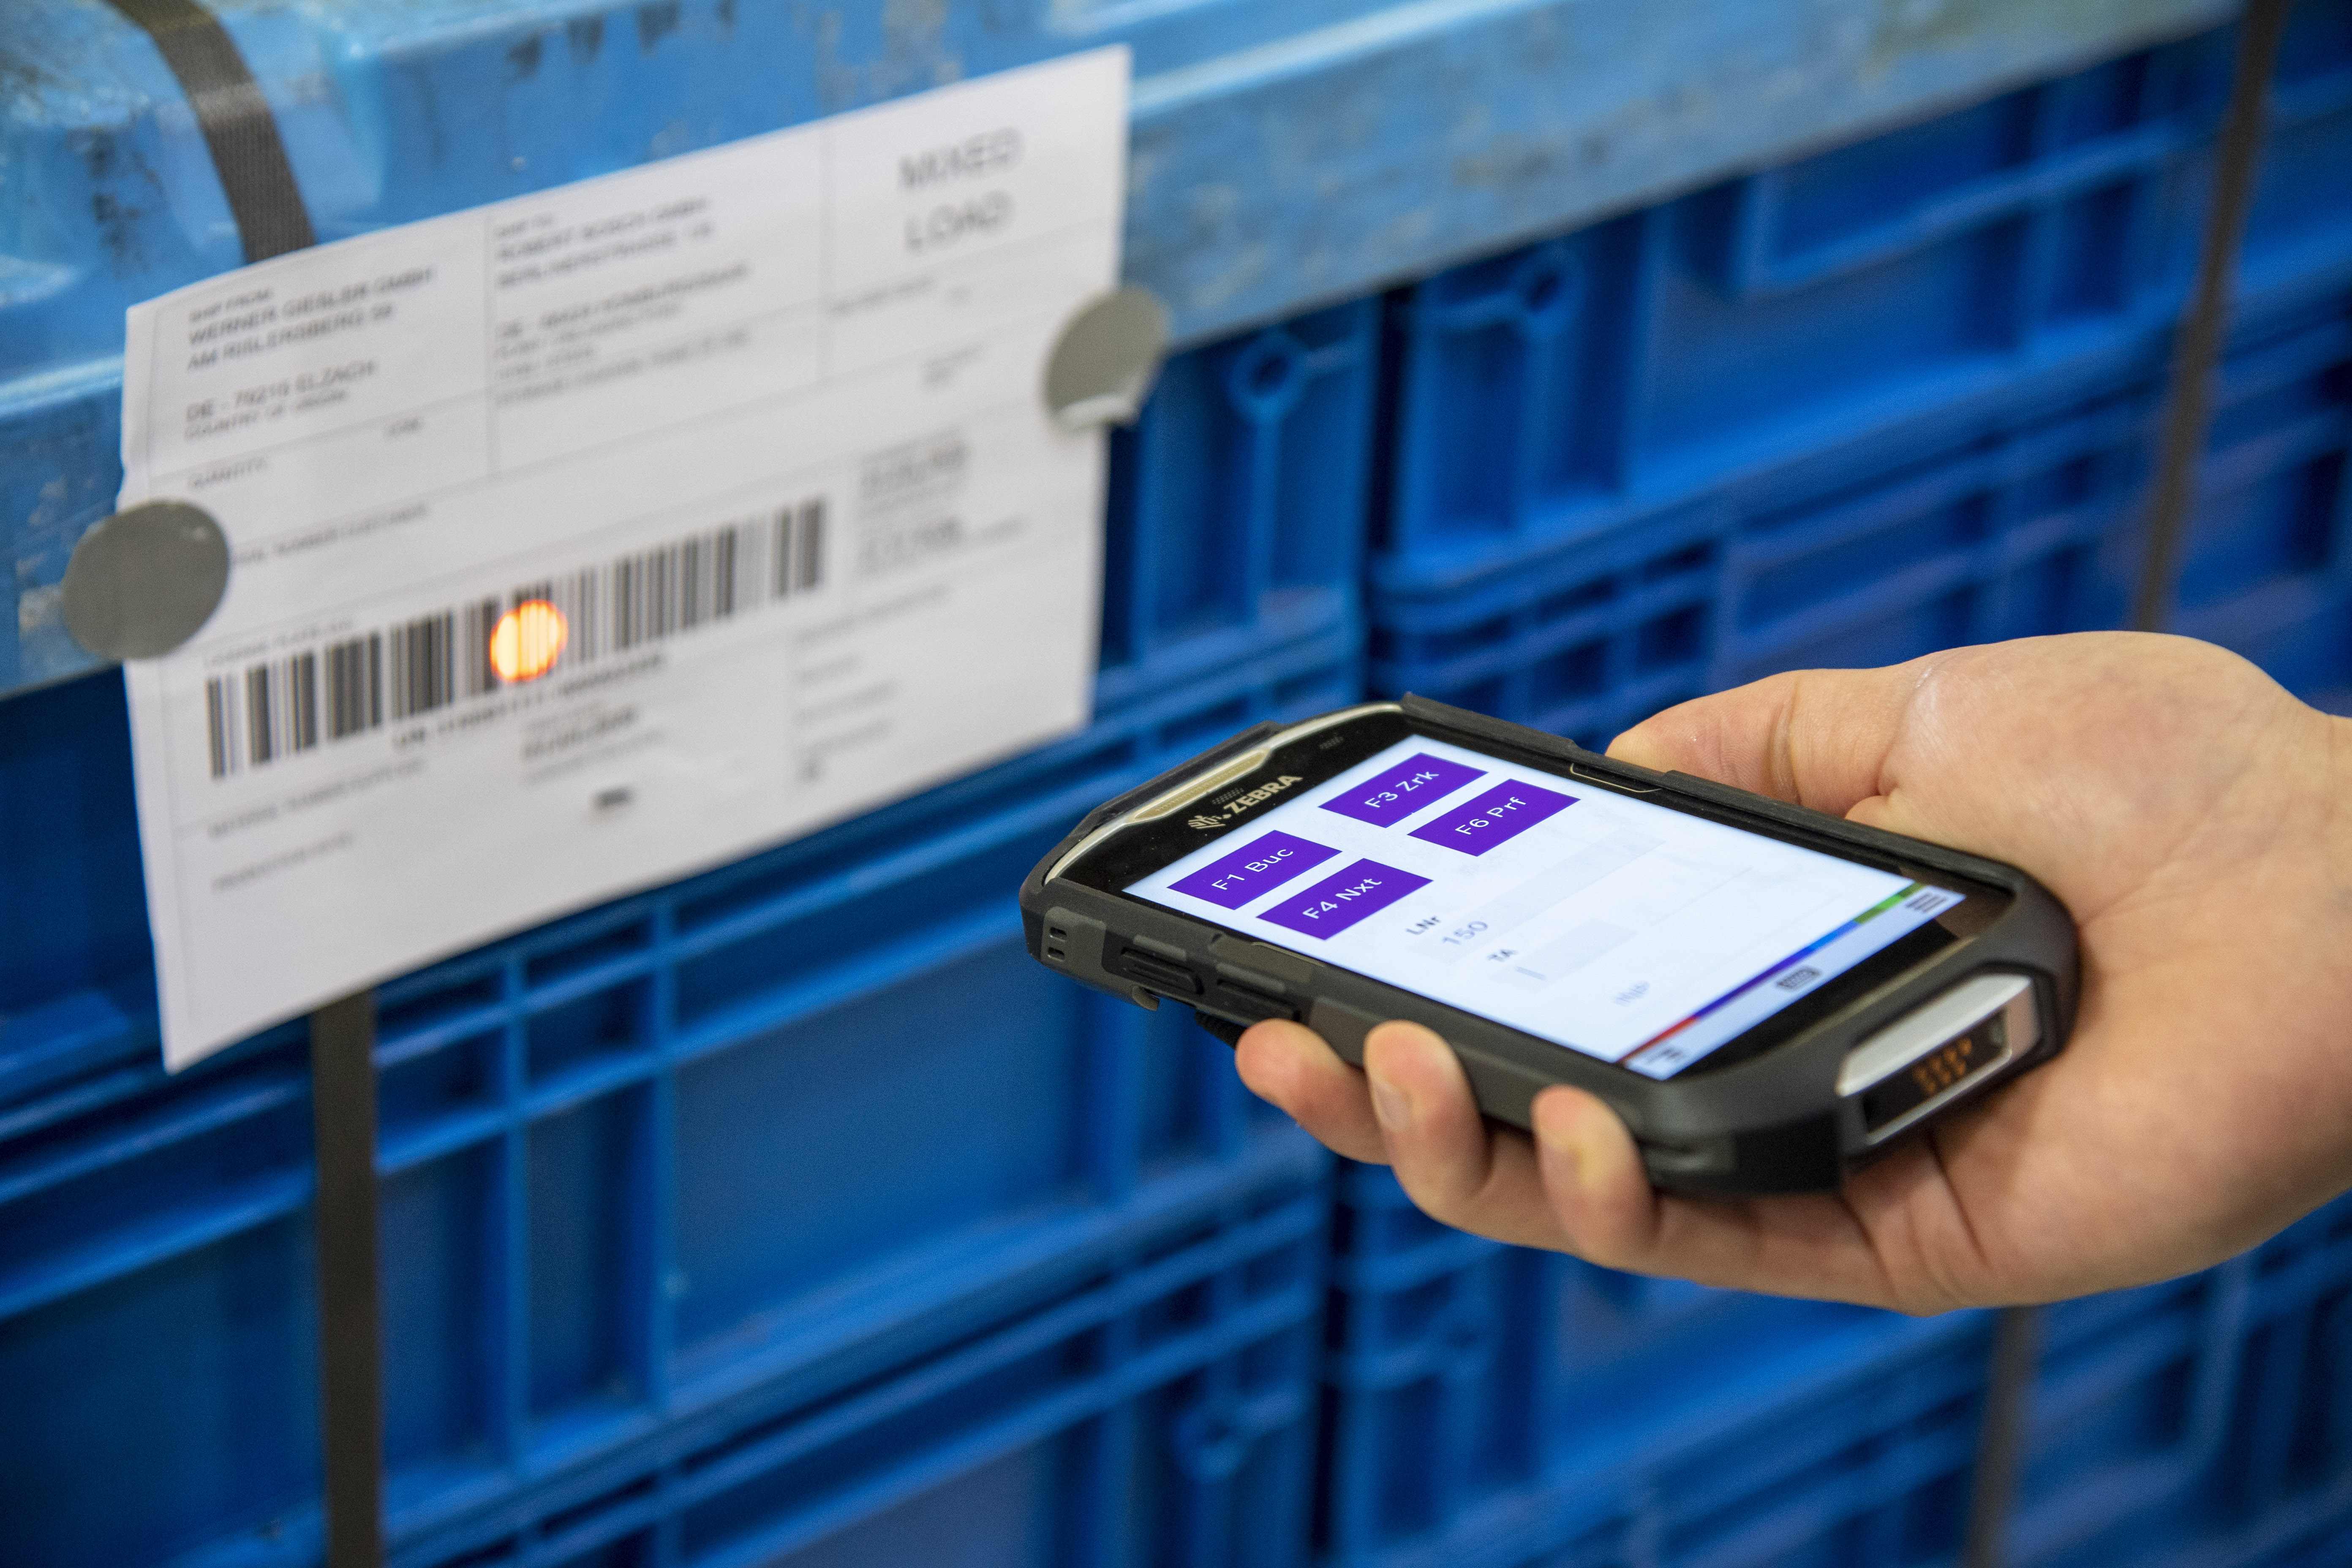 Digitized supply chains